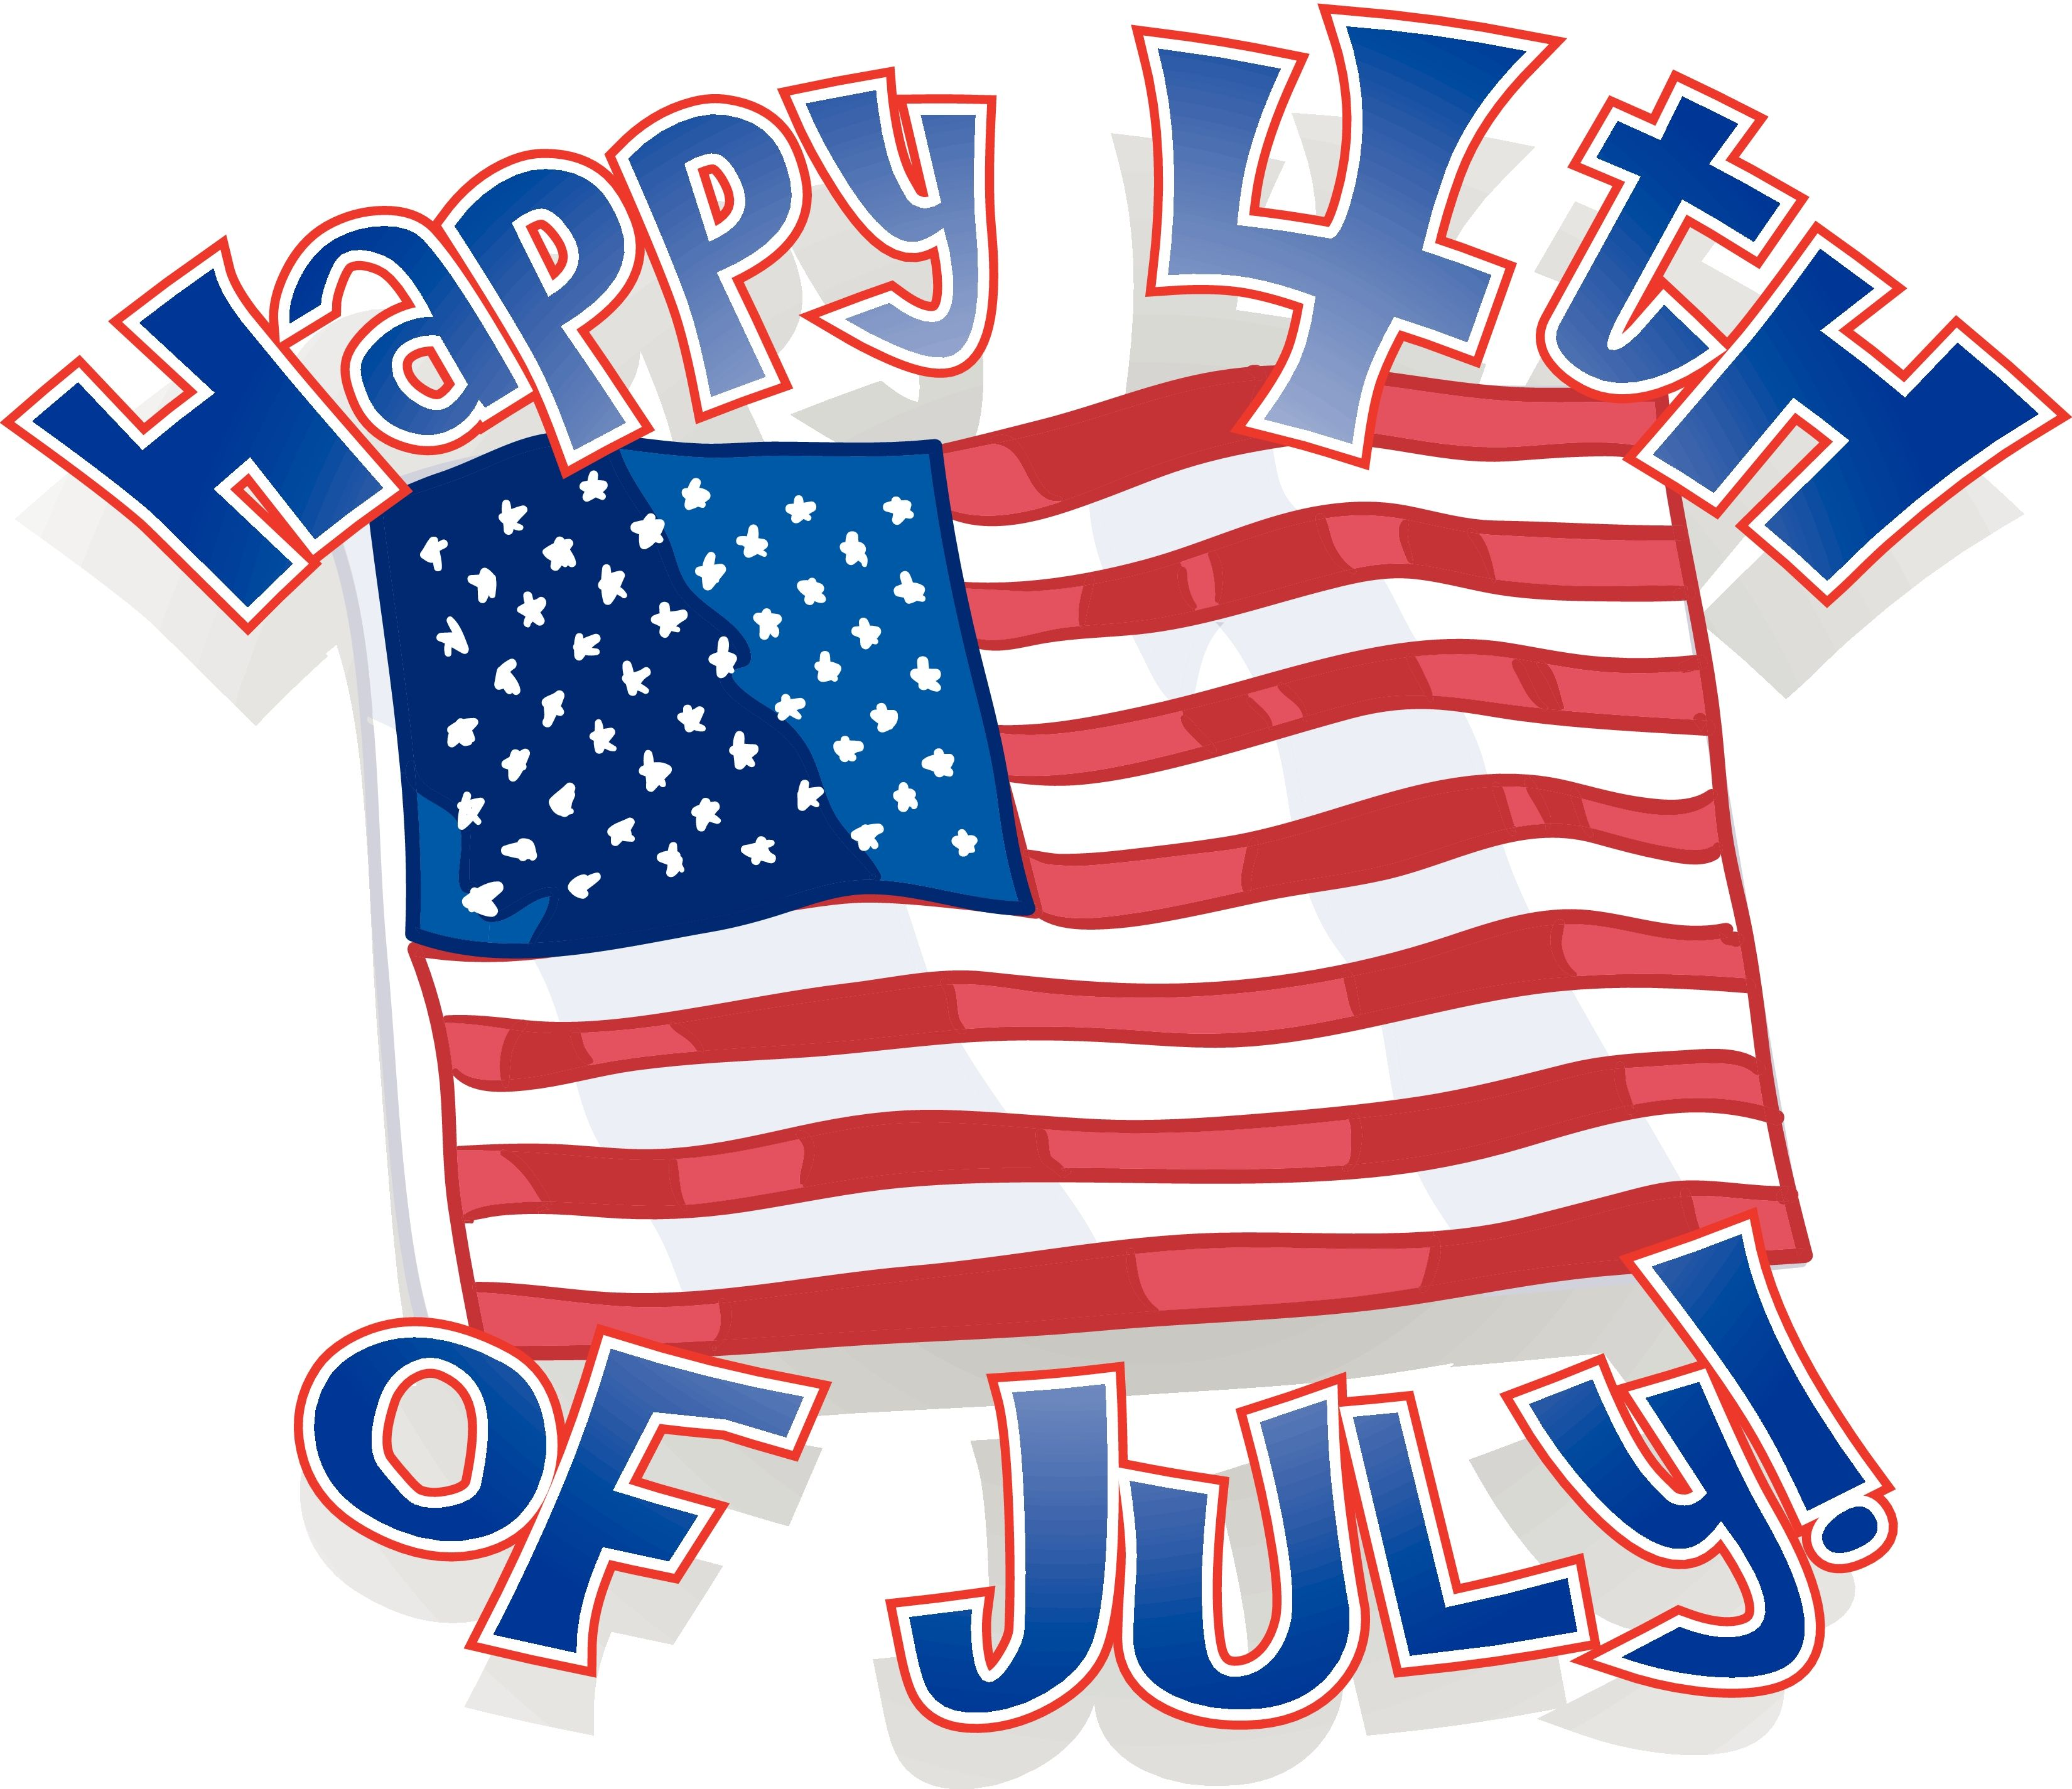 Happy fourth of july clipart for facebook clip art free download Happy fourth of july clipart for facebook - ClipartFest clip art free download